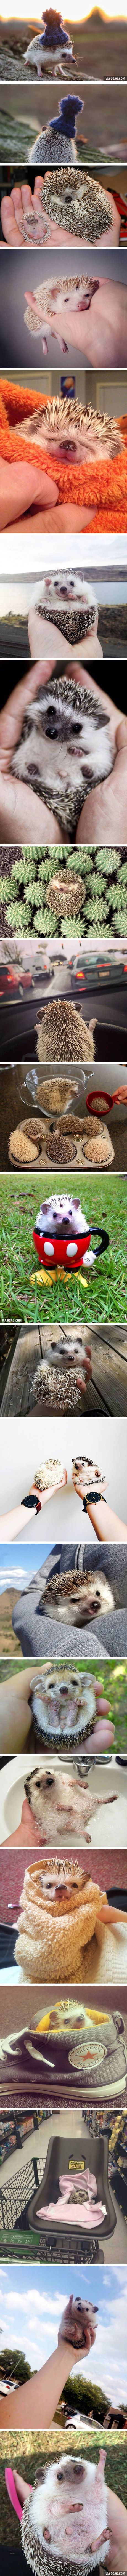 I start to fall in love with hedgehogs